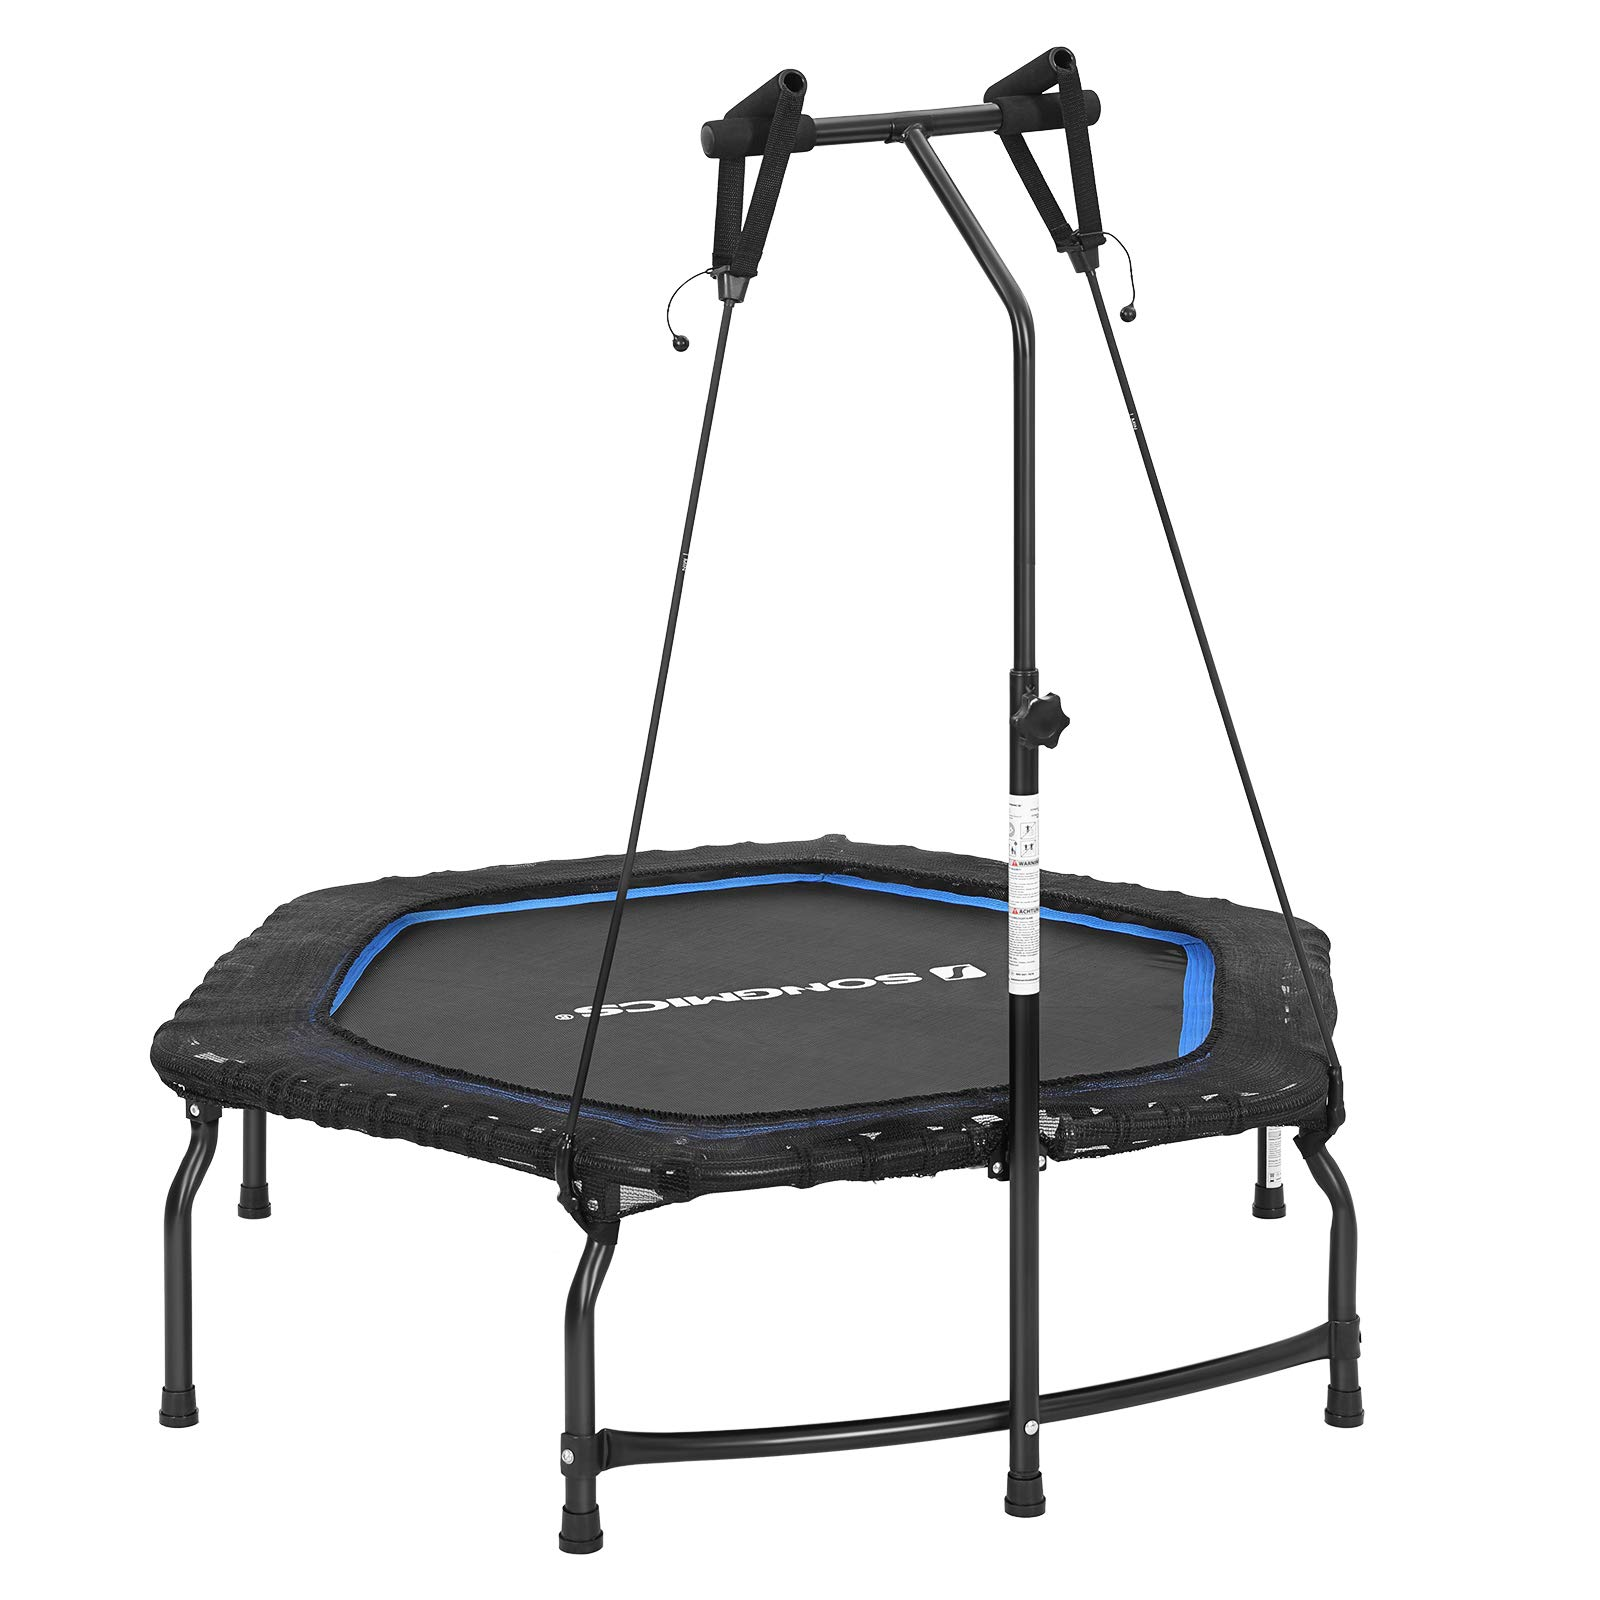 SONGMICS Mini Trampoline Fitness Rebounder 44-Inch by SONGMICS